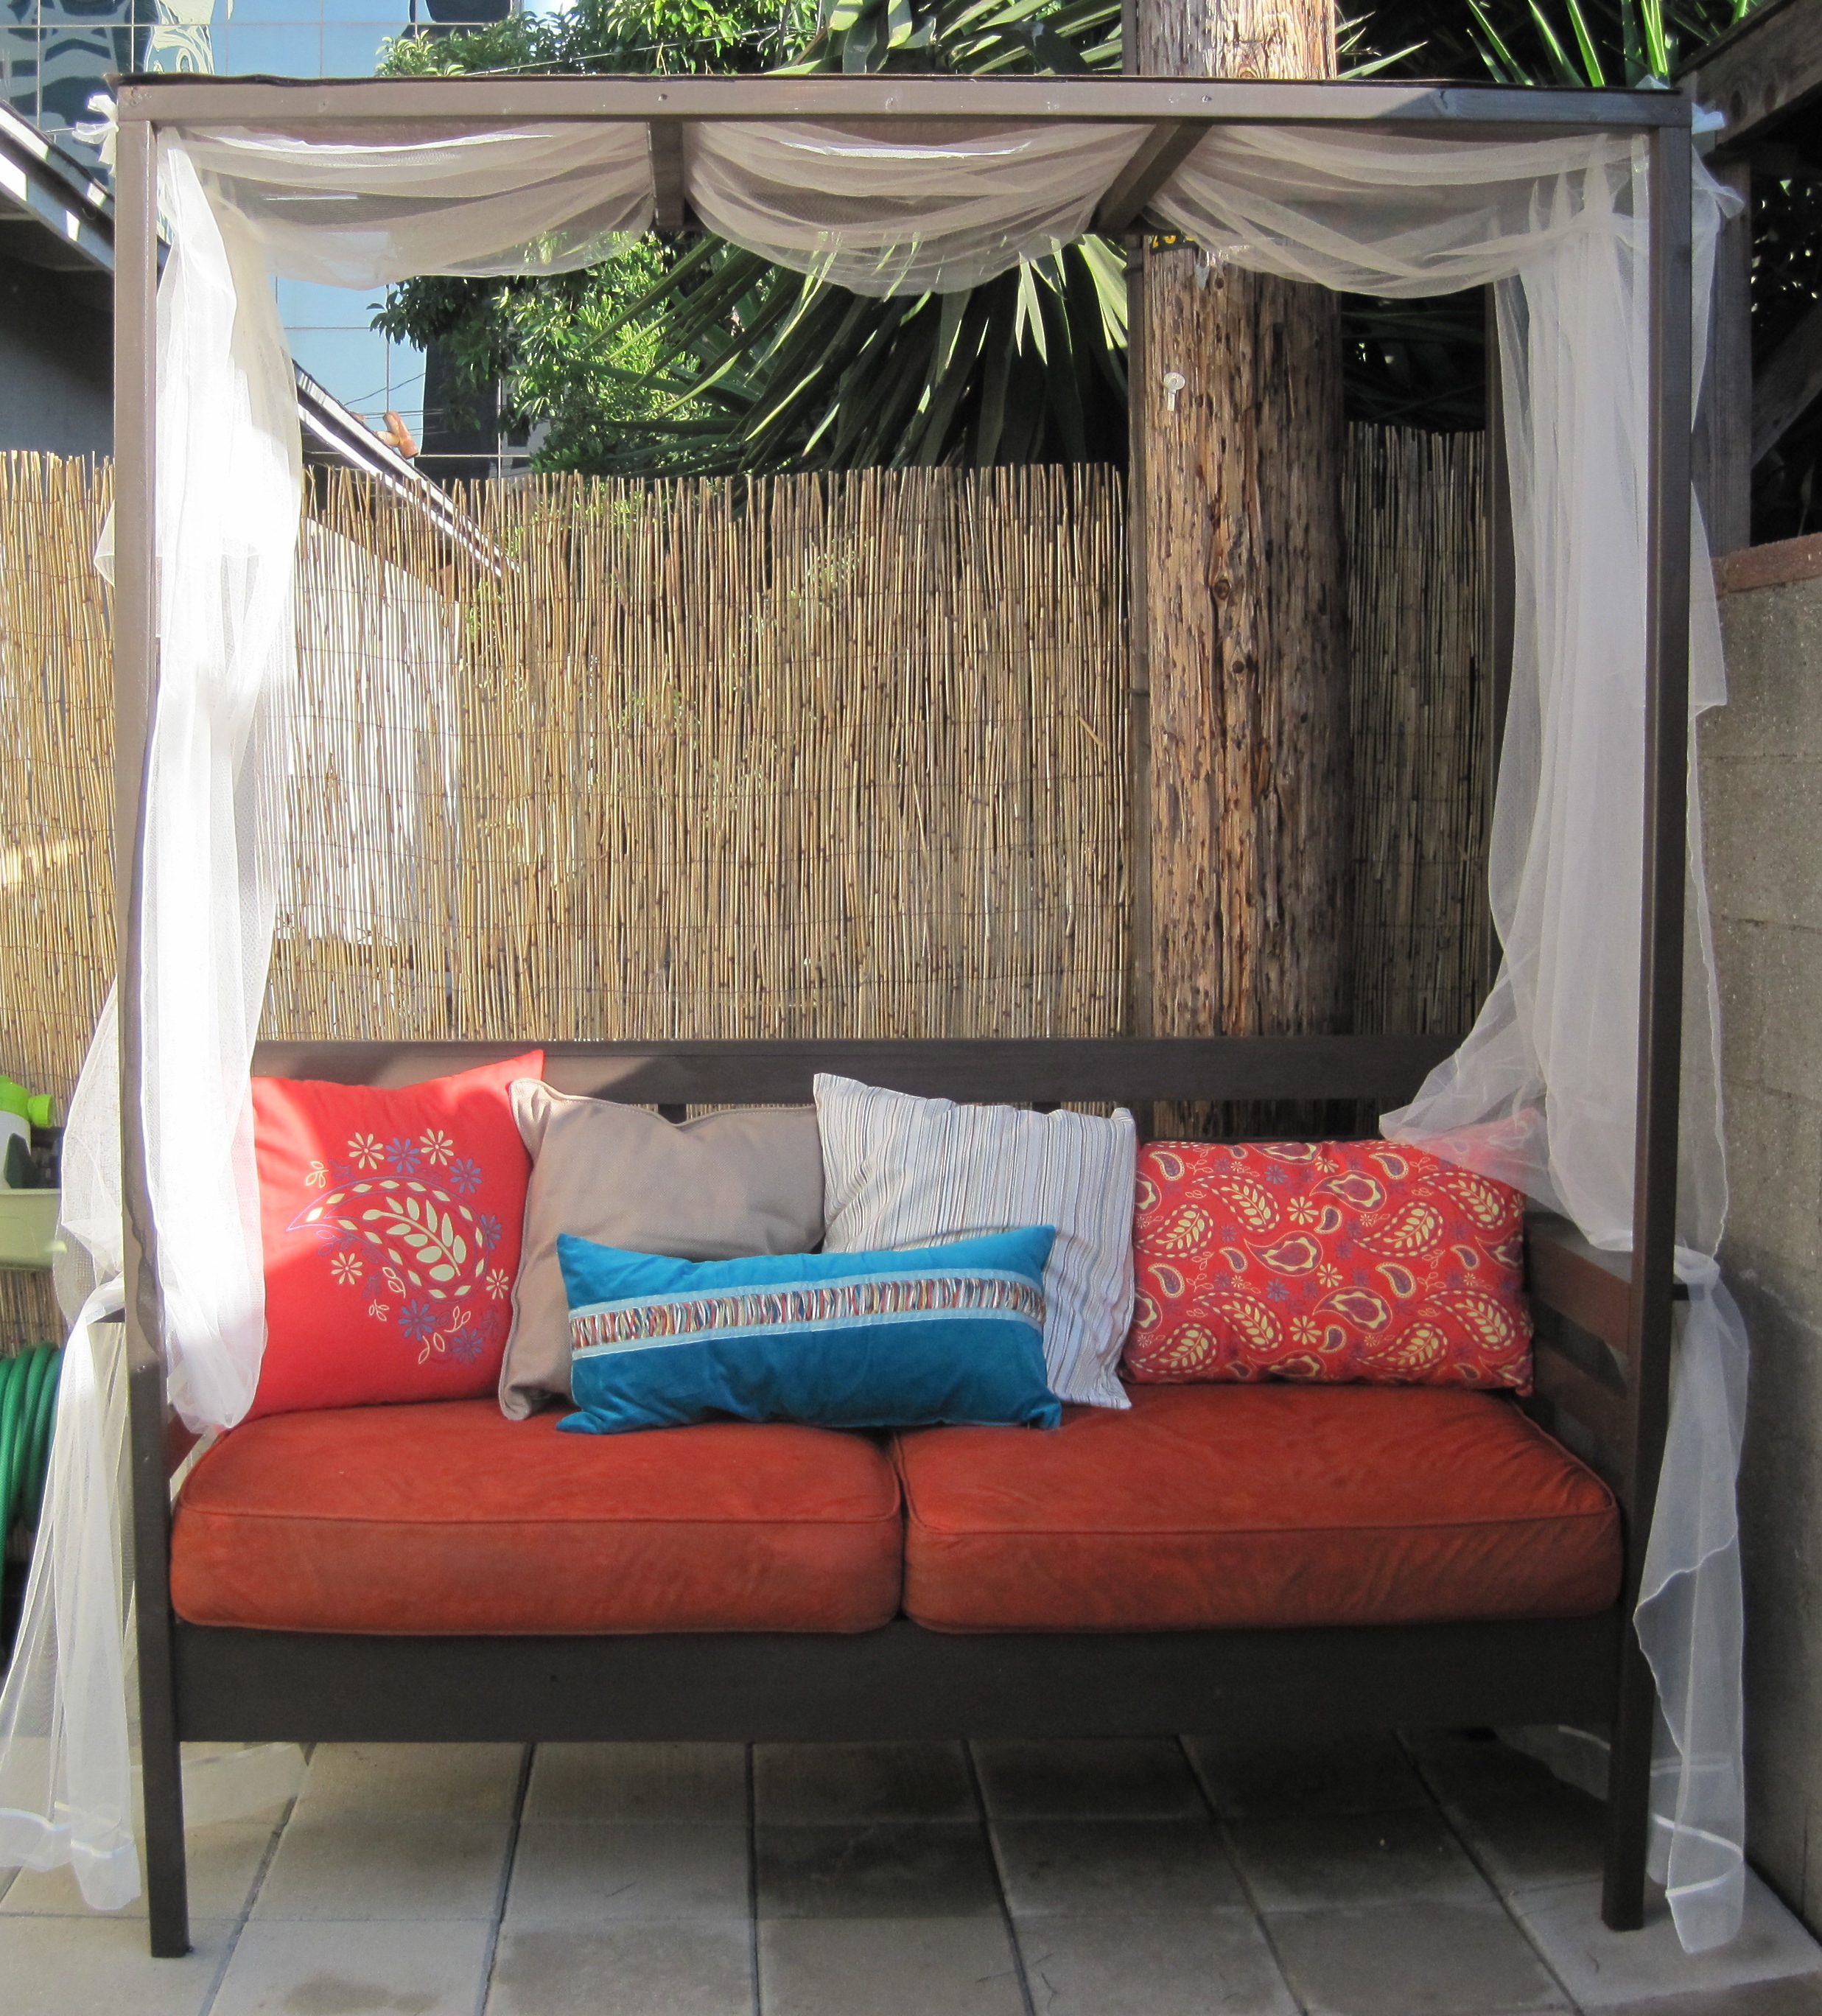 Pictures of Daybed for Outdoor - HomesFeed on Belham Living Lilianna Outdoor Daybed id=36776